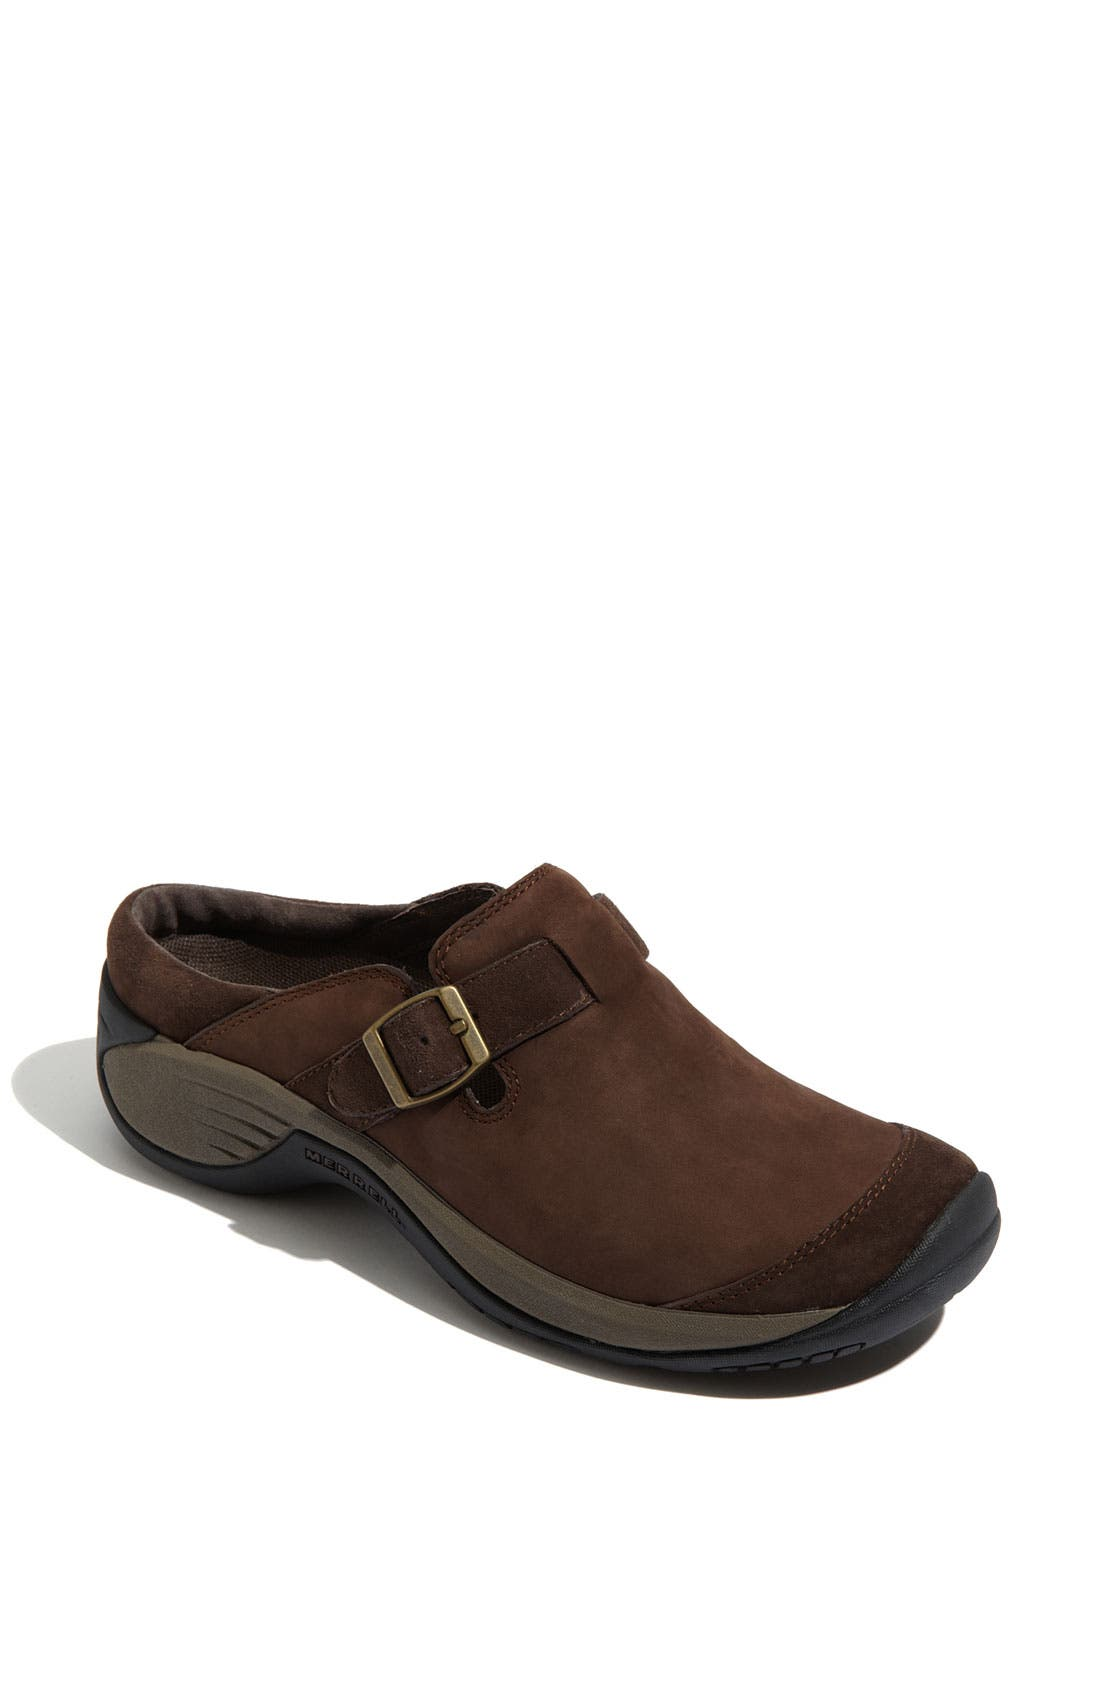 Alternate Image 1 Selected - Merrell 'Encore' Buckle Clog